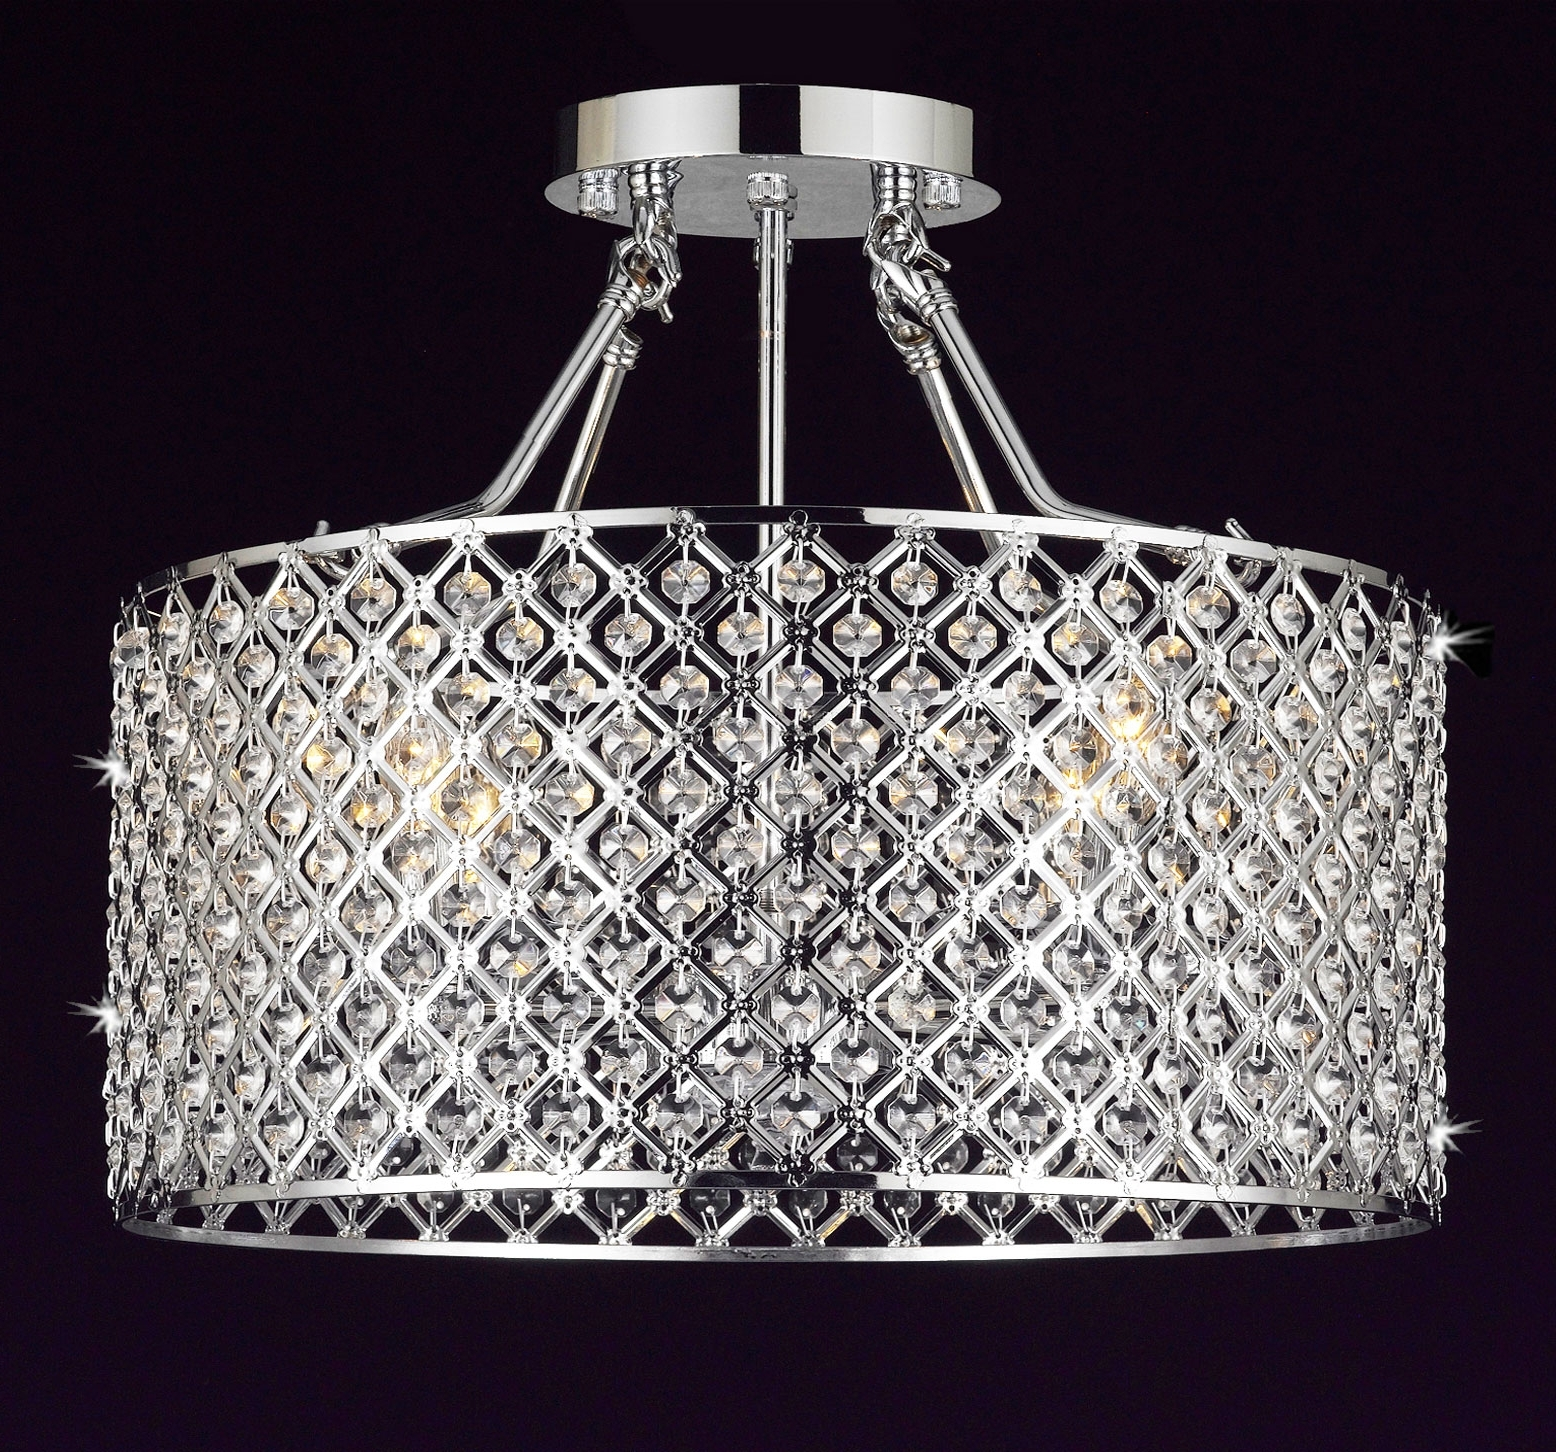 4 Light Chrome Crystal Chandeliers Throughout Most Recently Released G7 B12/white/2130/4 Gallery Chandeliers Flushmount 4 Light Chrome (Gallery 14 of 15)